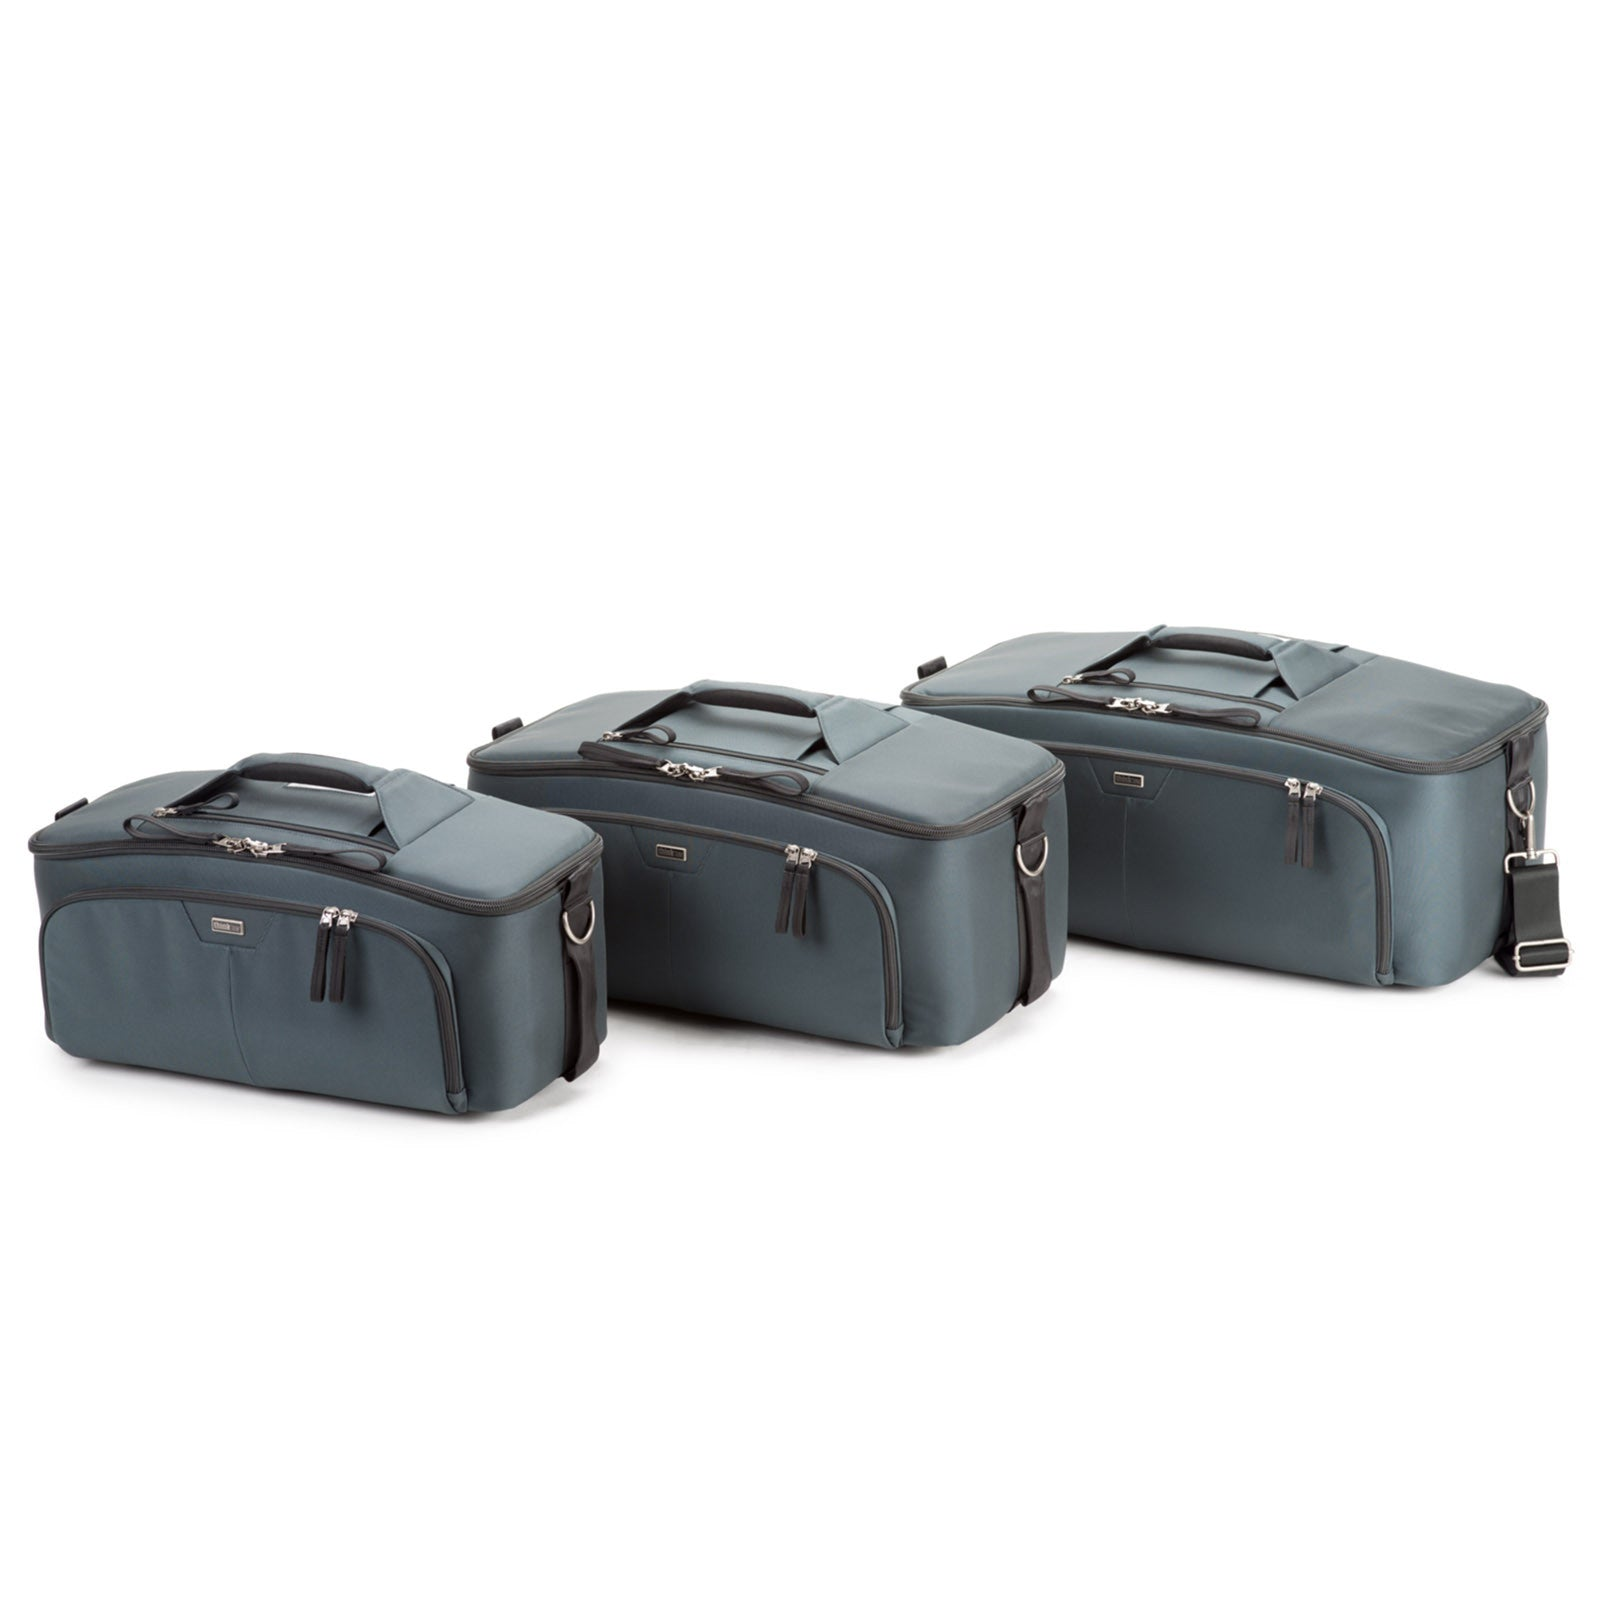 Video Workhorse 19 Camera Gear Cases Shoulder Bags Think Tank Photo Fuse Box Panel Cover